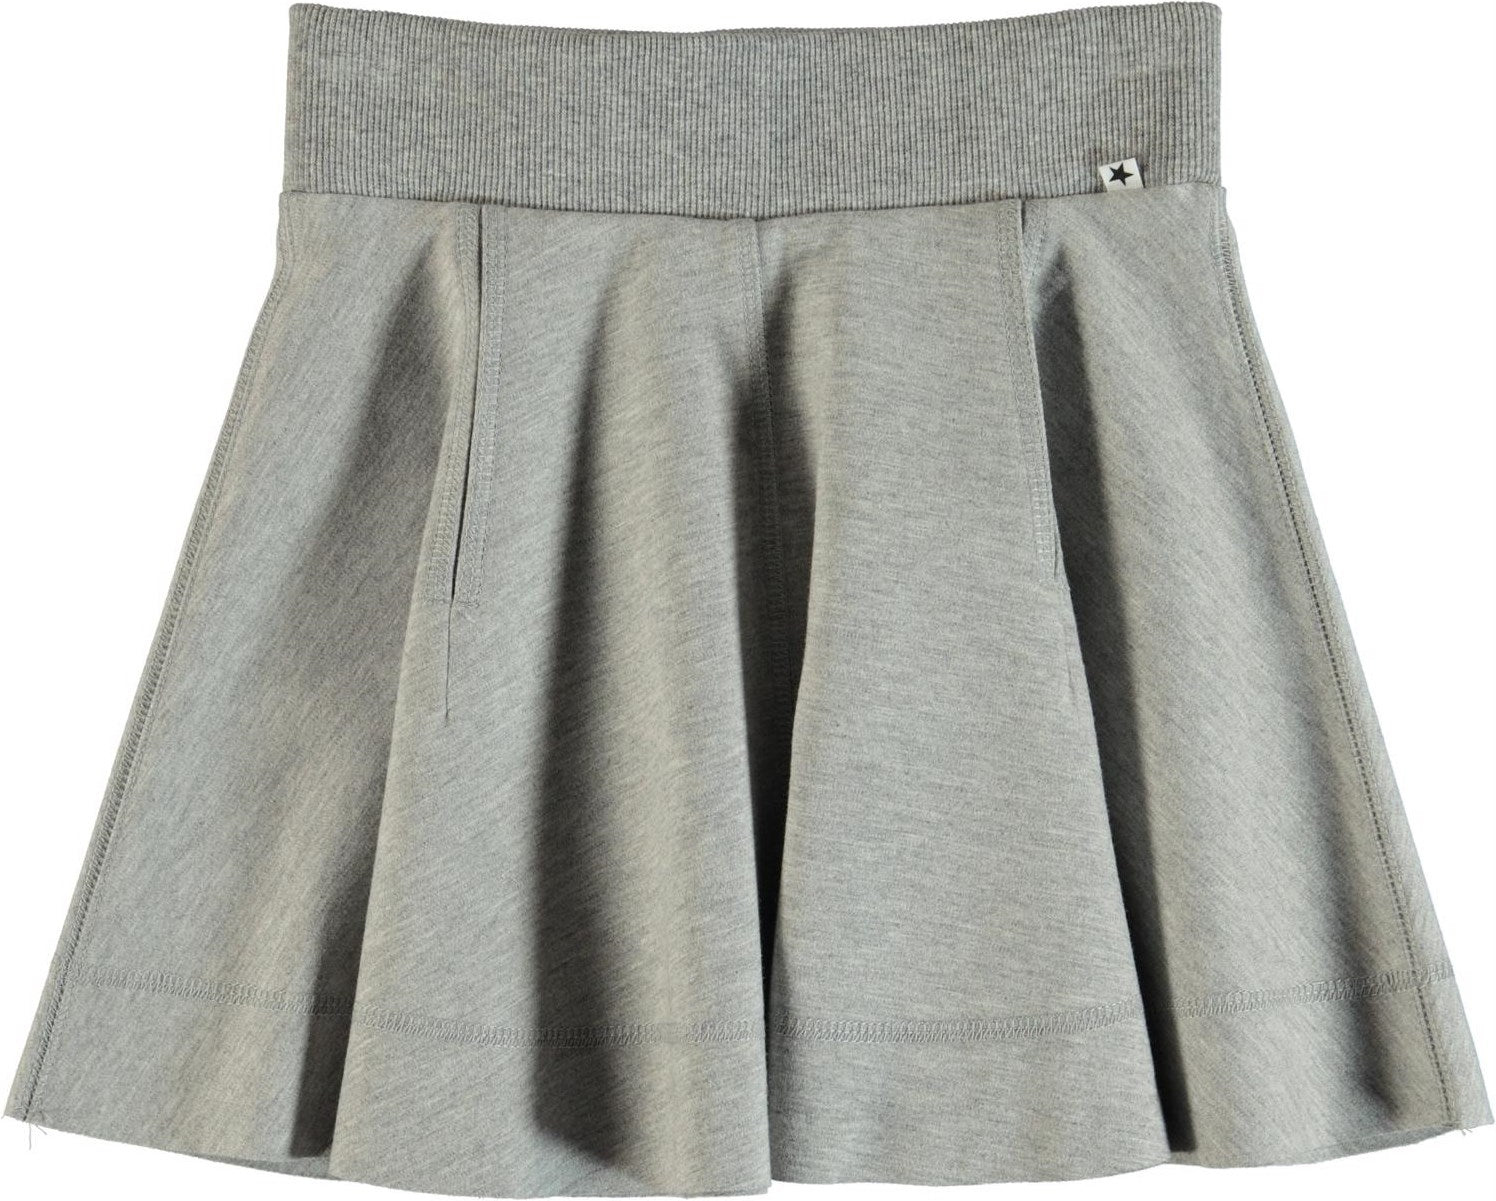 Designer Kids Fashion at Bloom Moda Online Children's Boutique - Molo Bjoerk Skirt,  Skirt